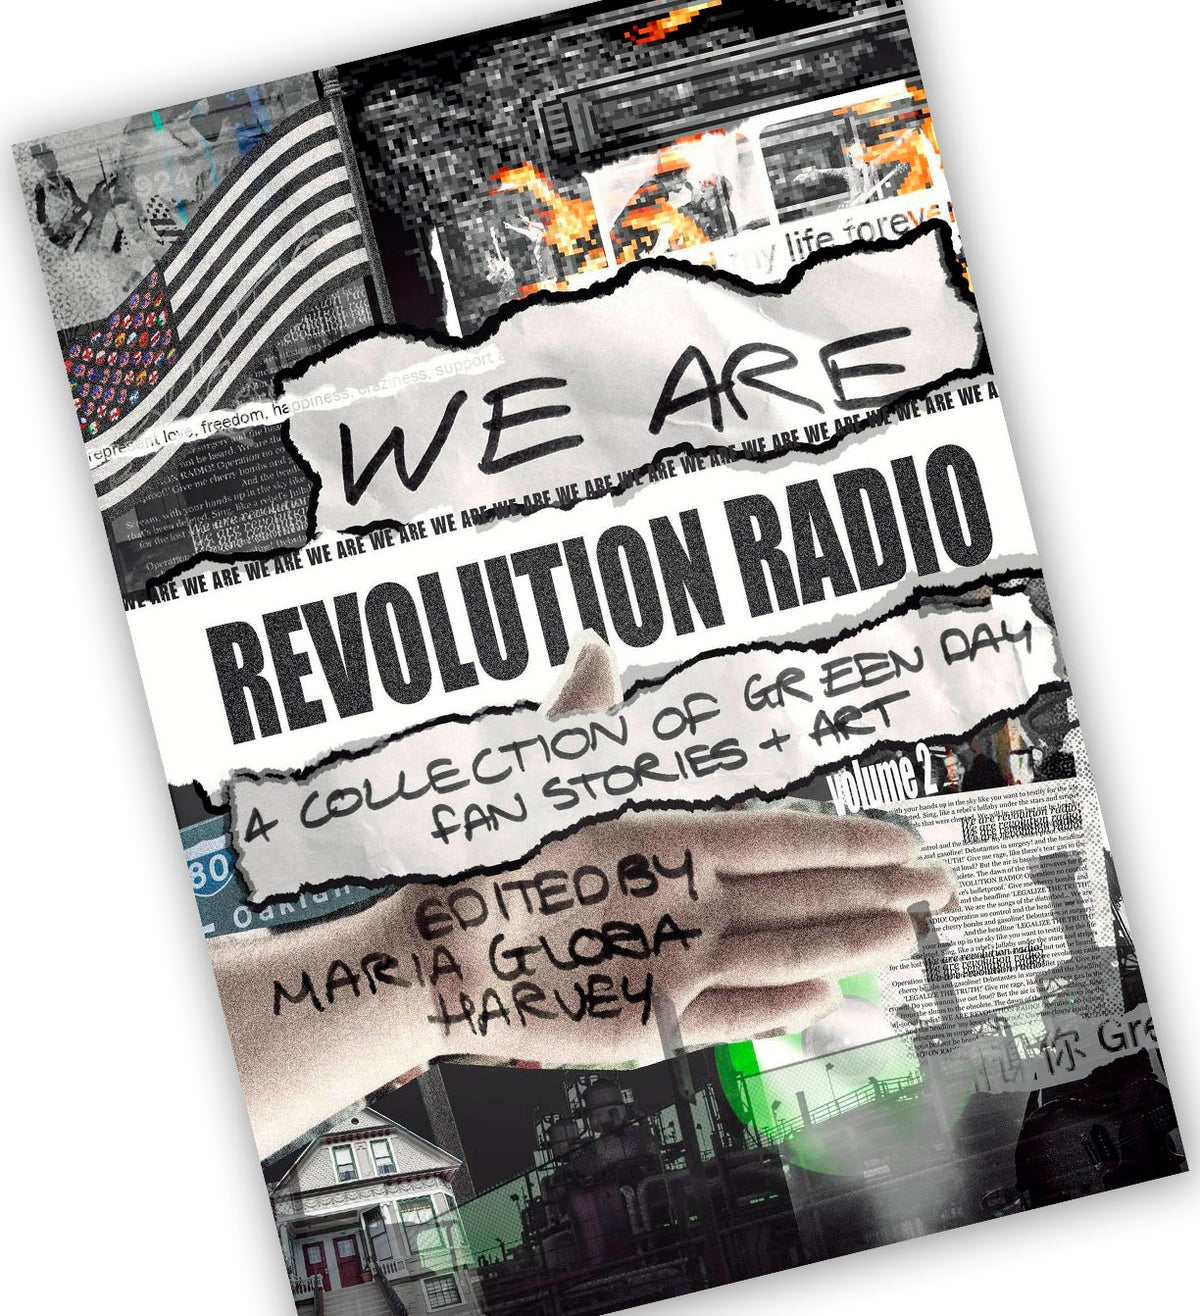 Image of We Are Revolution Radio: A Collection Of Green Day Fan Stories & Art